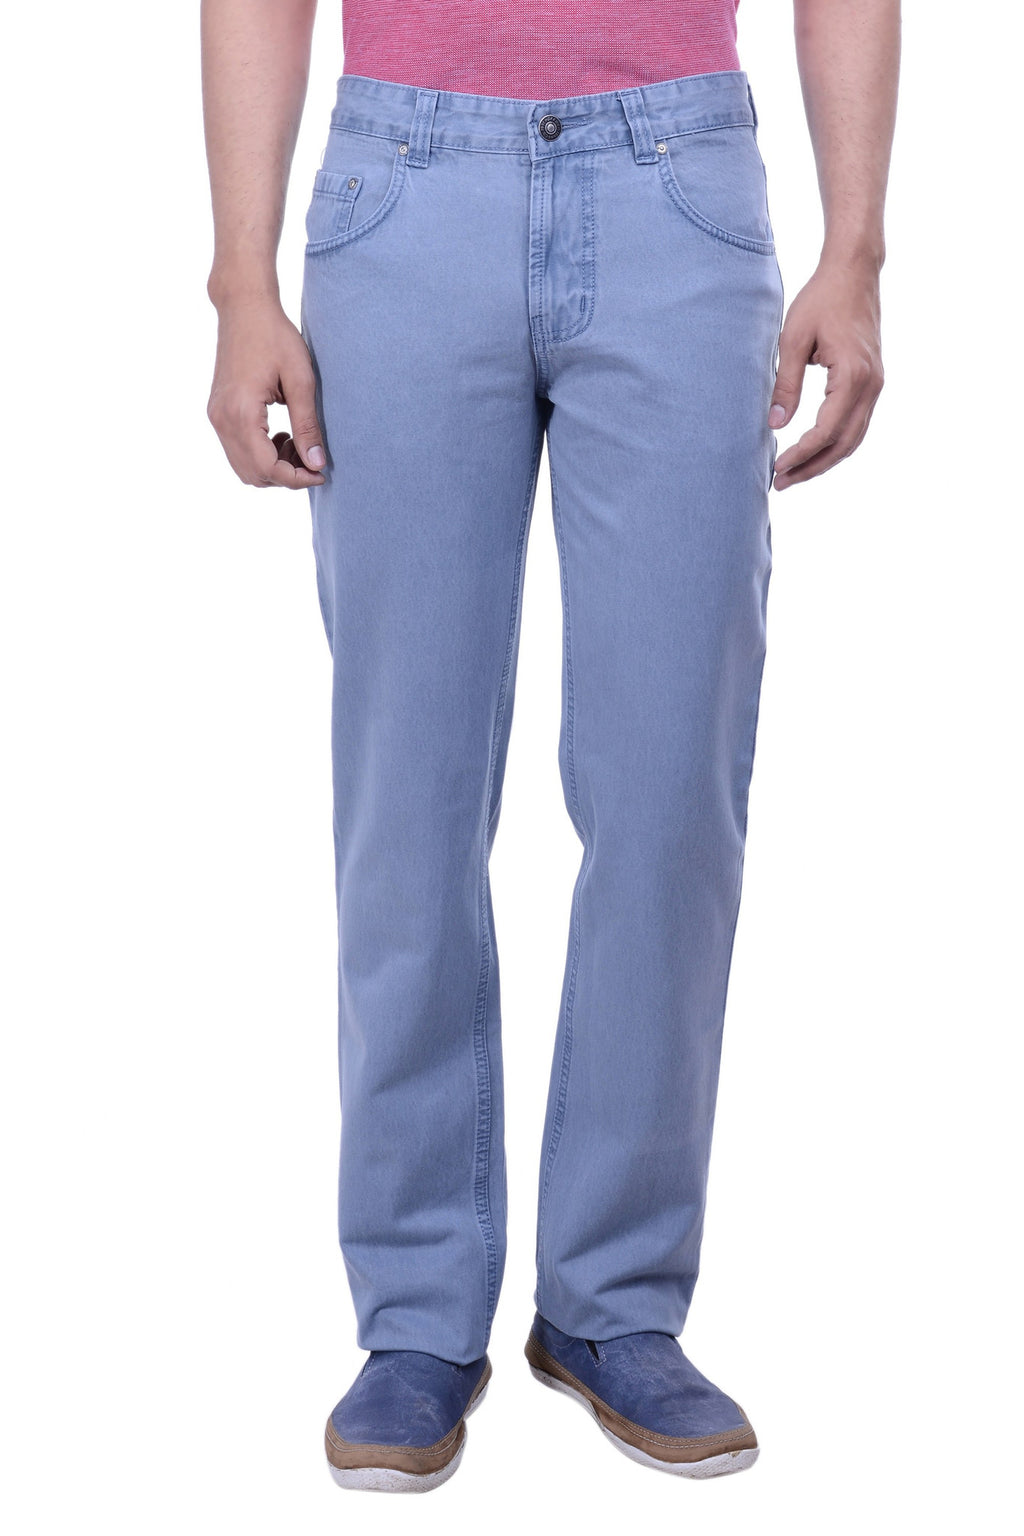 Hoffmen Regular Fit Men's Jeans SD2115